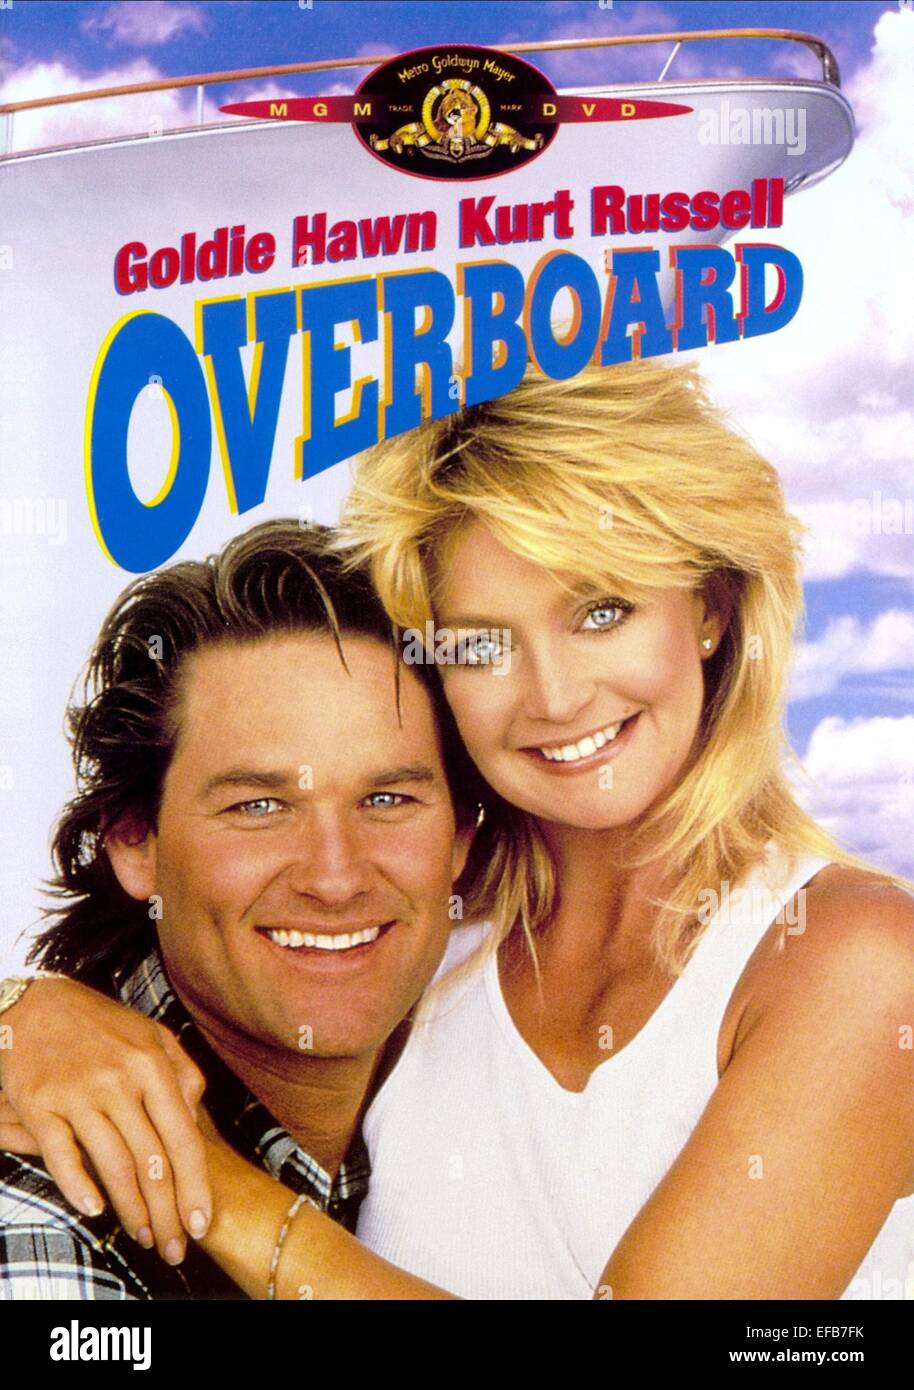 kurt russell amp goldie hawn poster overboard 1987 stock